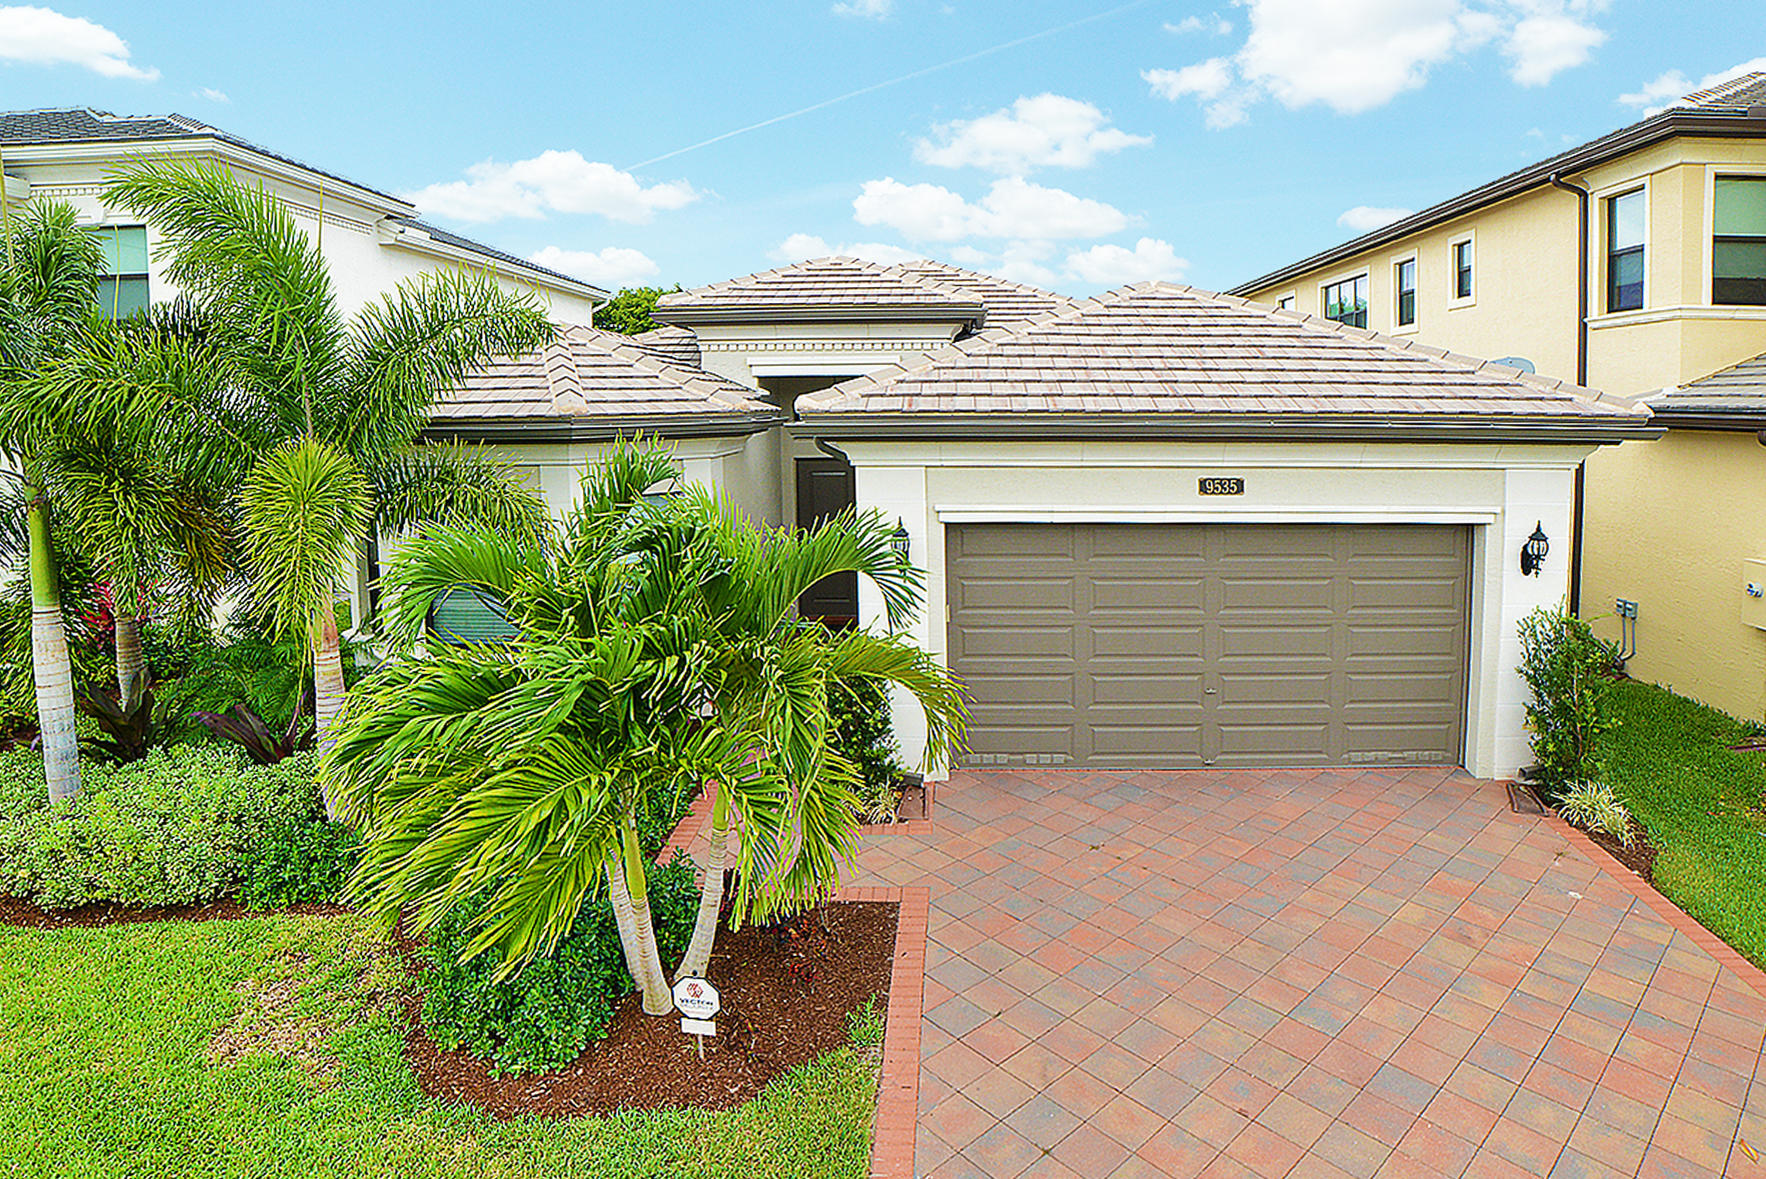 Photo of  Delray Beach, FL 33446 MLS RX-10625329